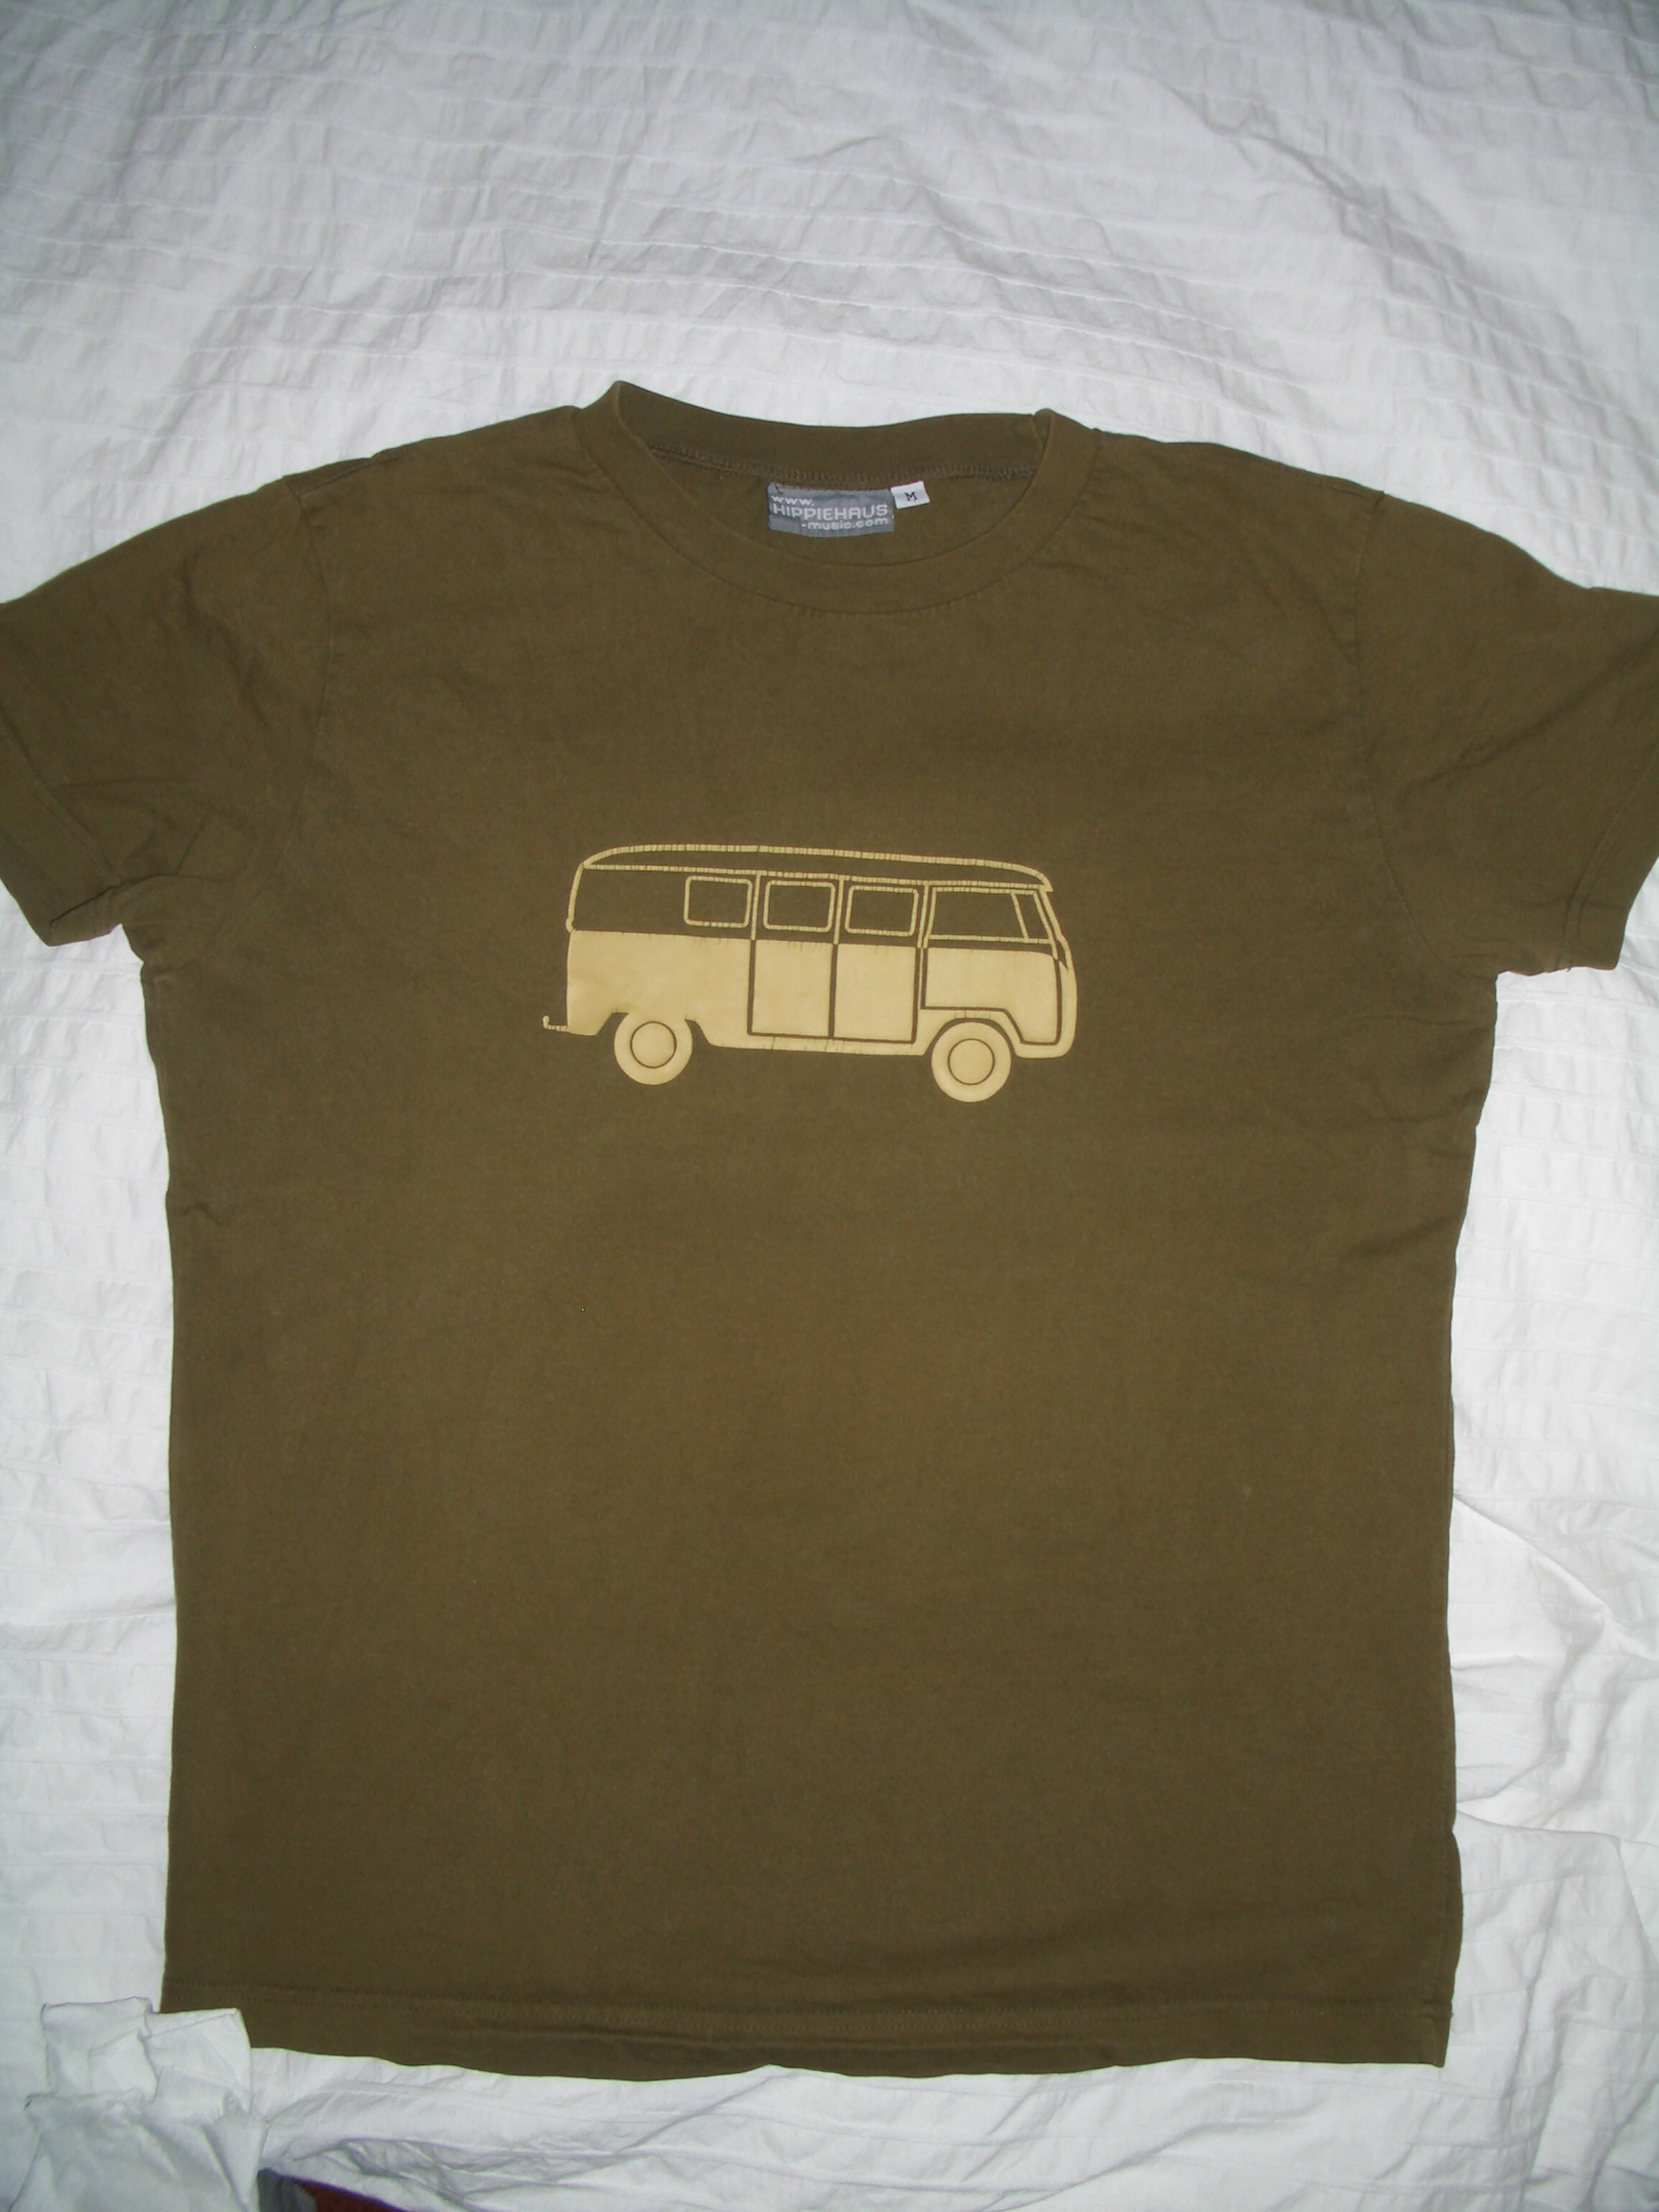 Bus T-Shirts from Spreadshirt Unique designs Easy 30 day return policy Shop Bus T-Shirts now!